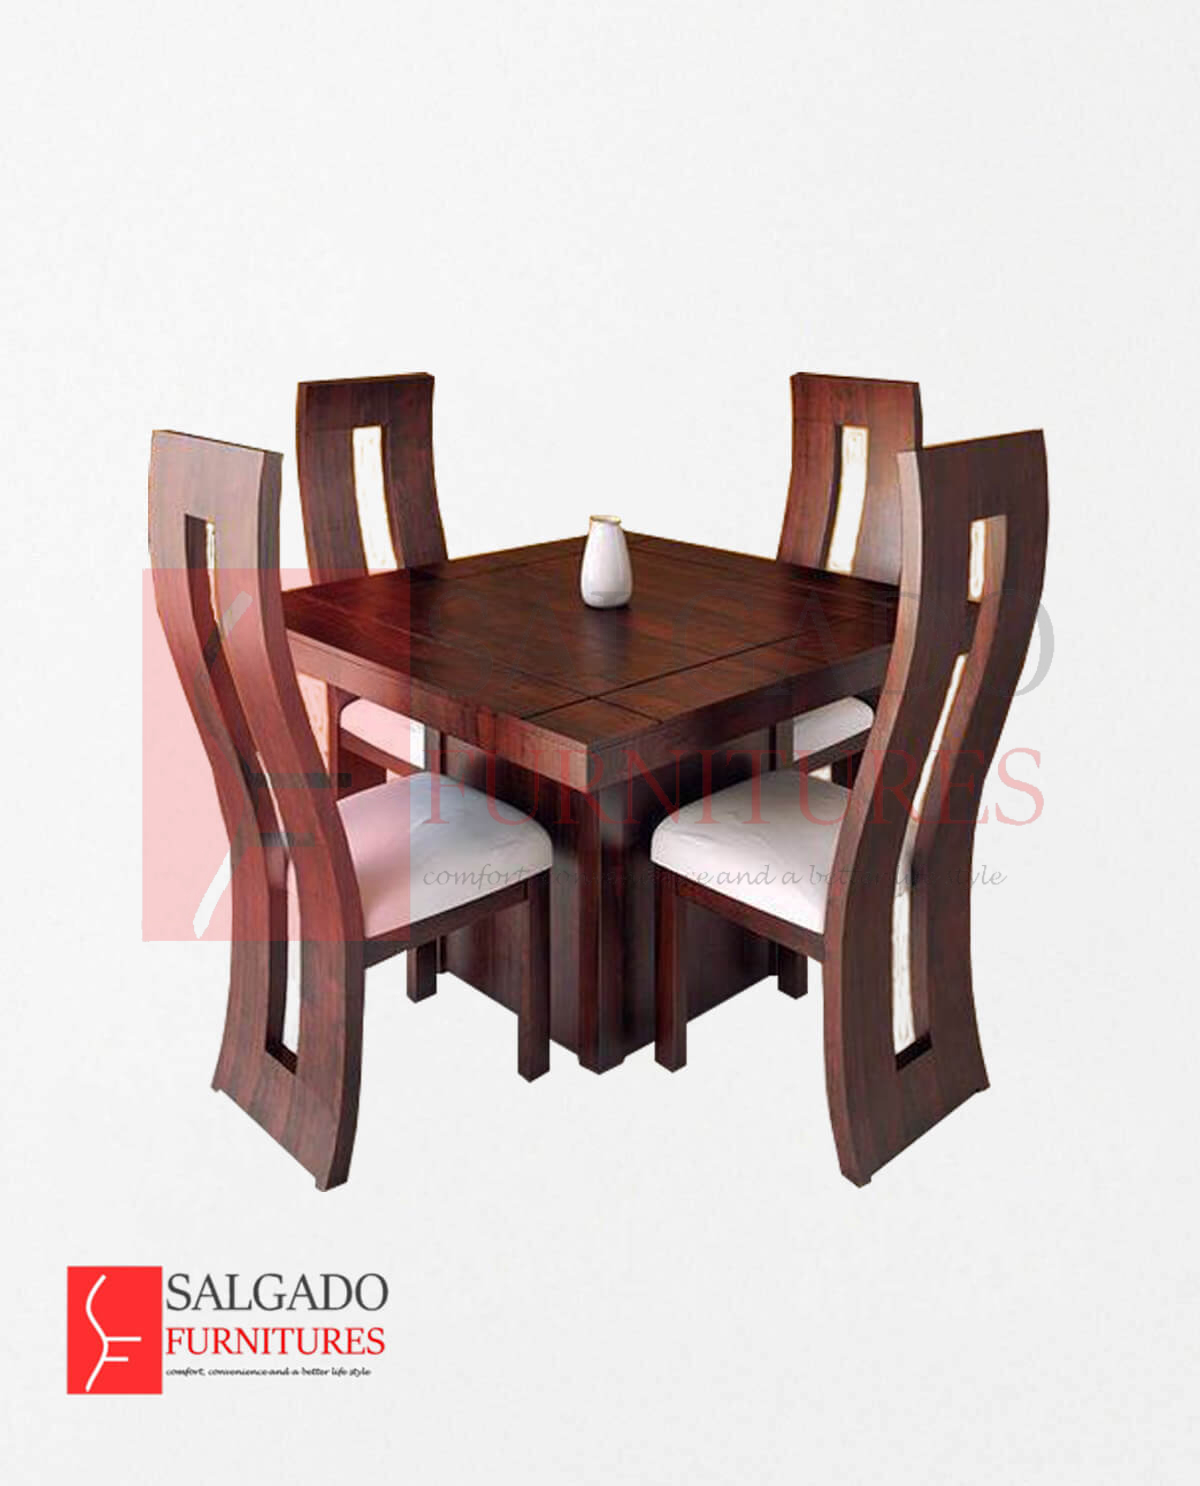 Dining Tables Salgado Furnitures Online